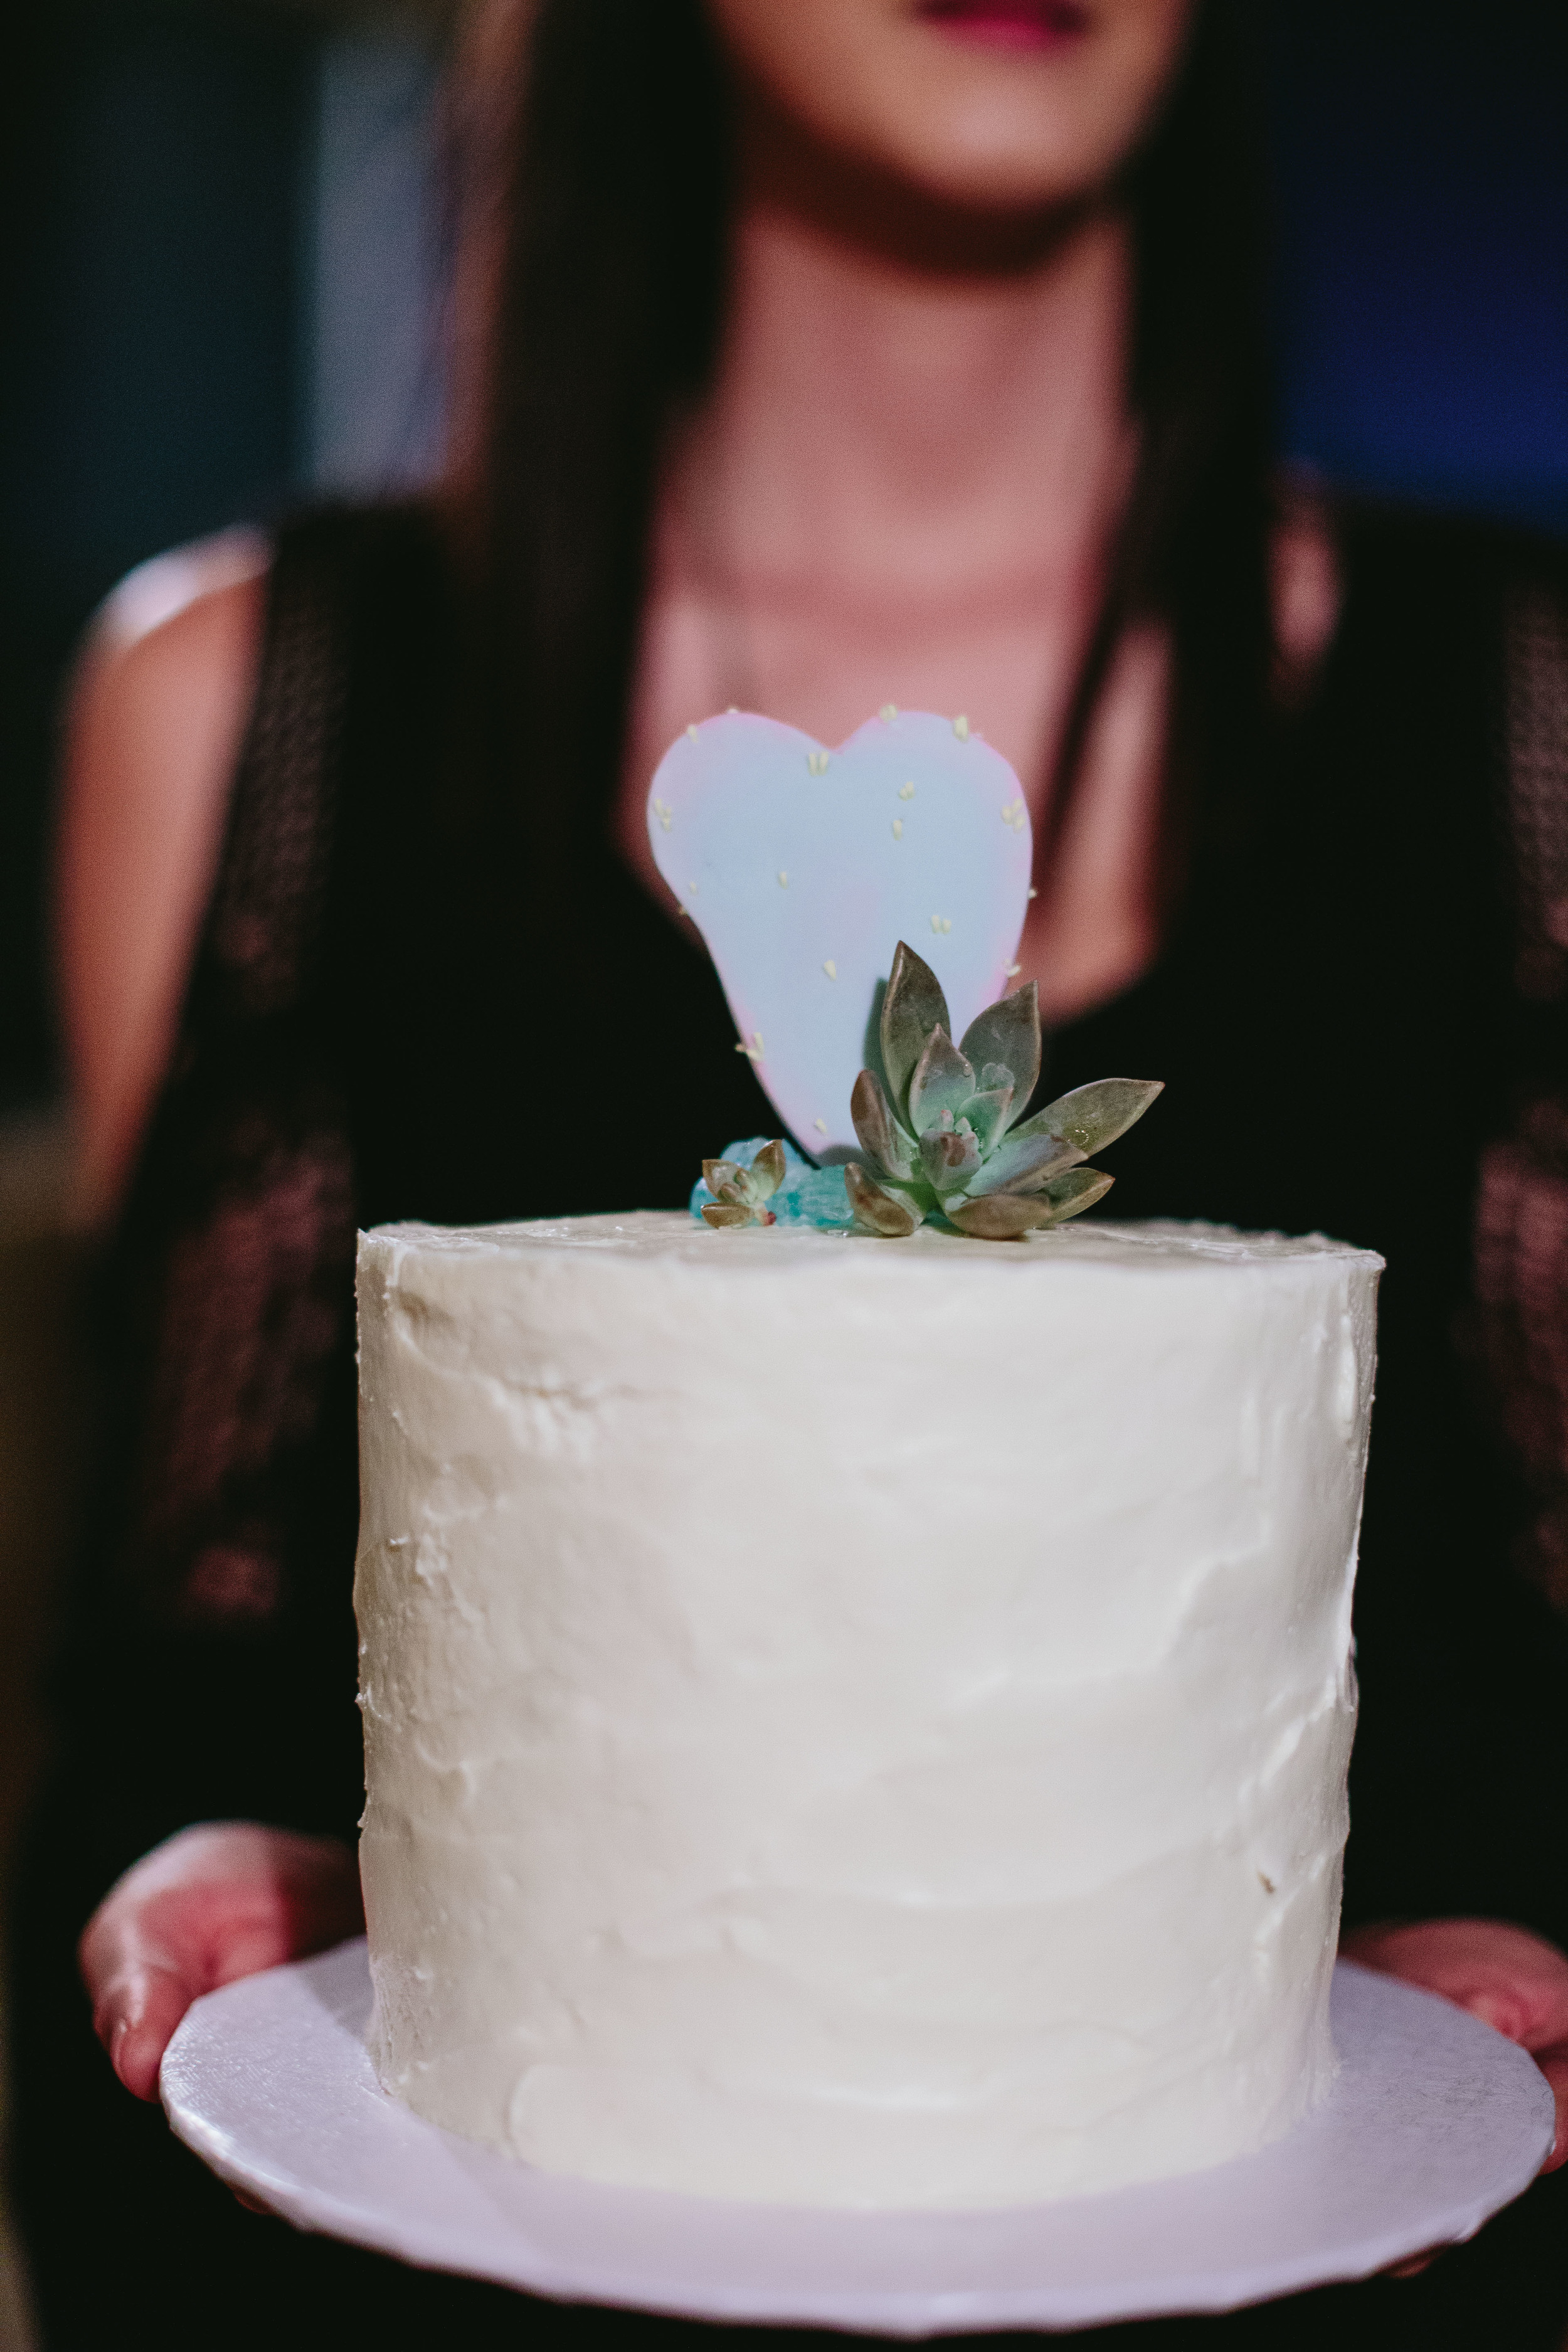 A Desert Gathering // The Eternal Child - Cake by Cakes n Cuddles